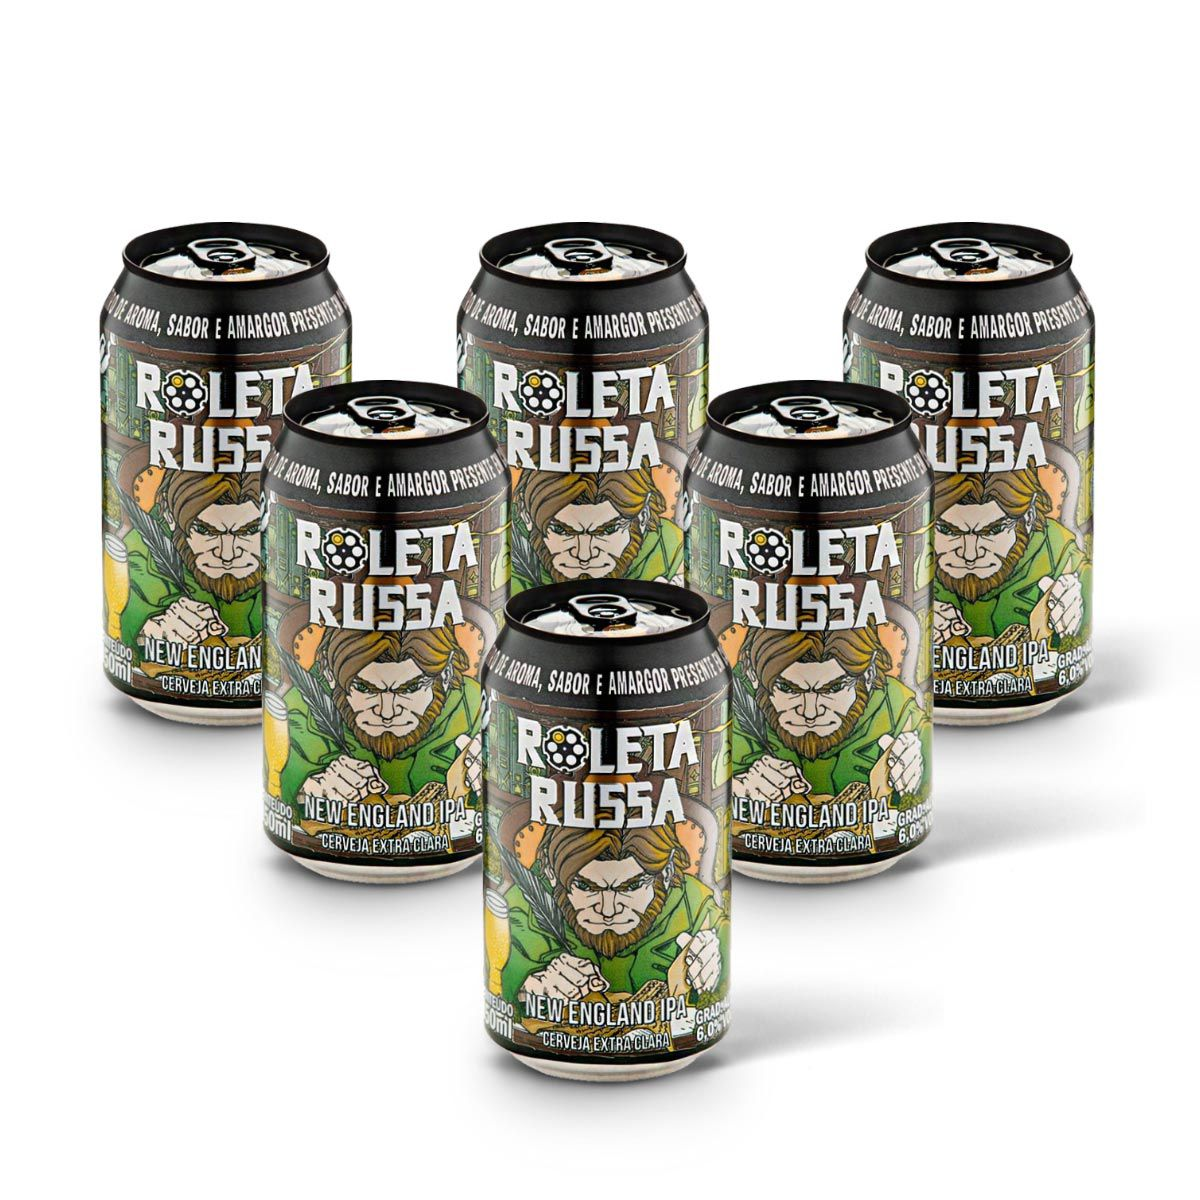 Pack Roleta Russa New England IPA 6 latas 350ml